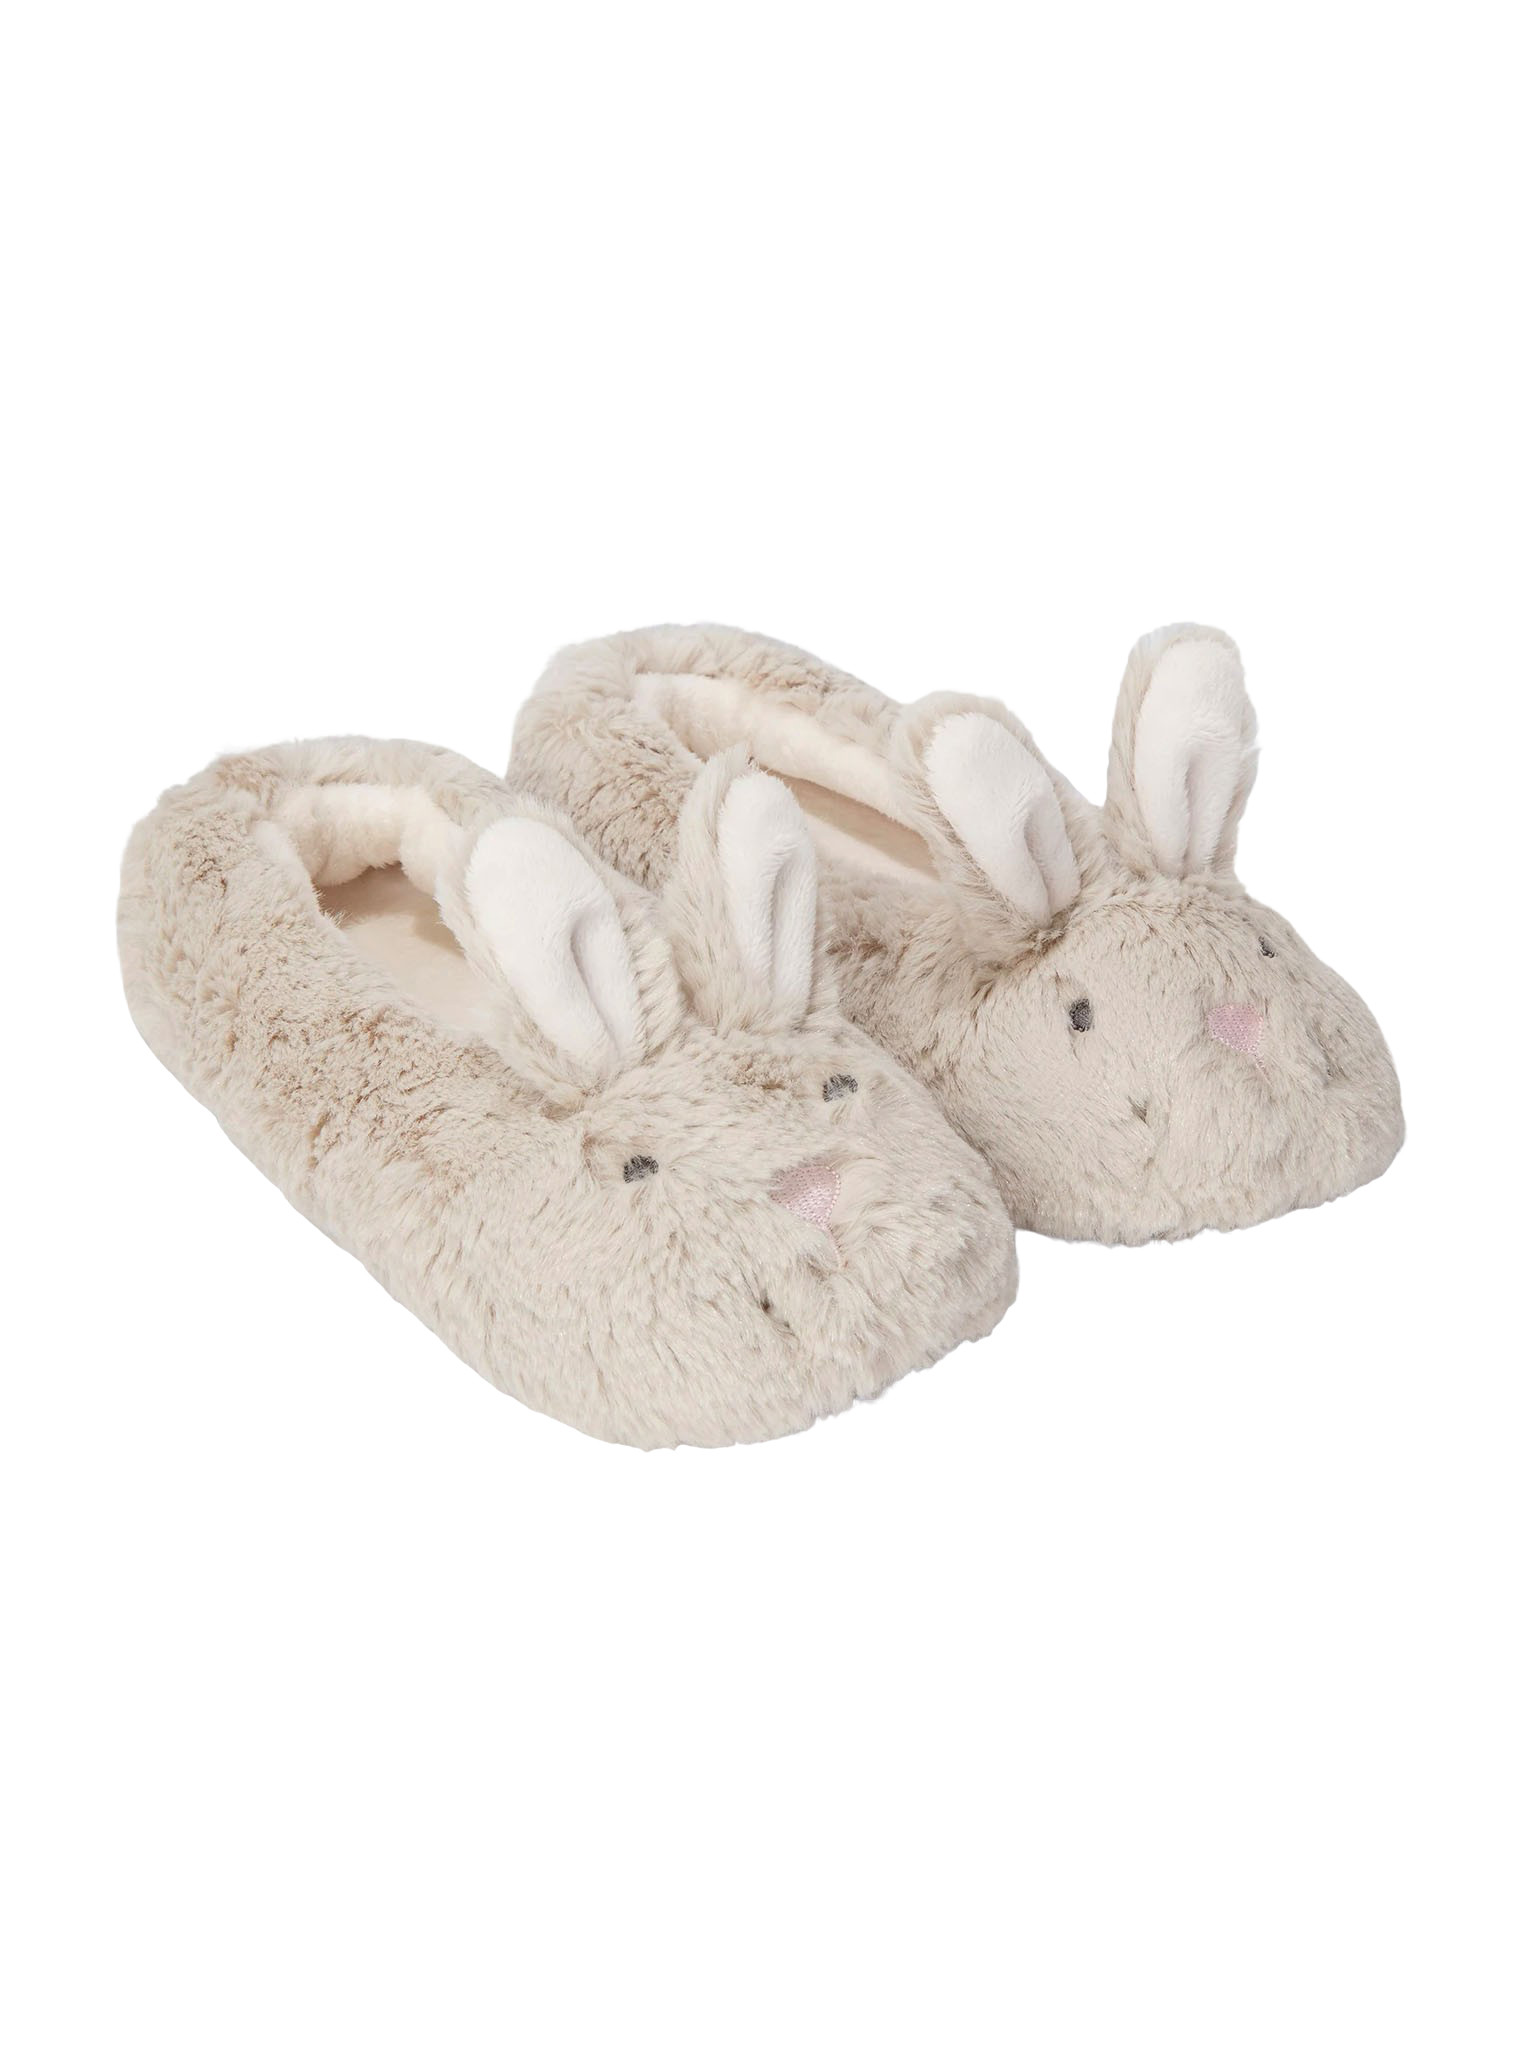 Bunny Slippers, Mink, The White Company